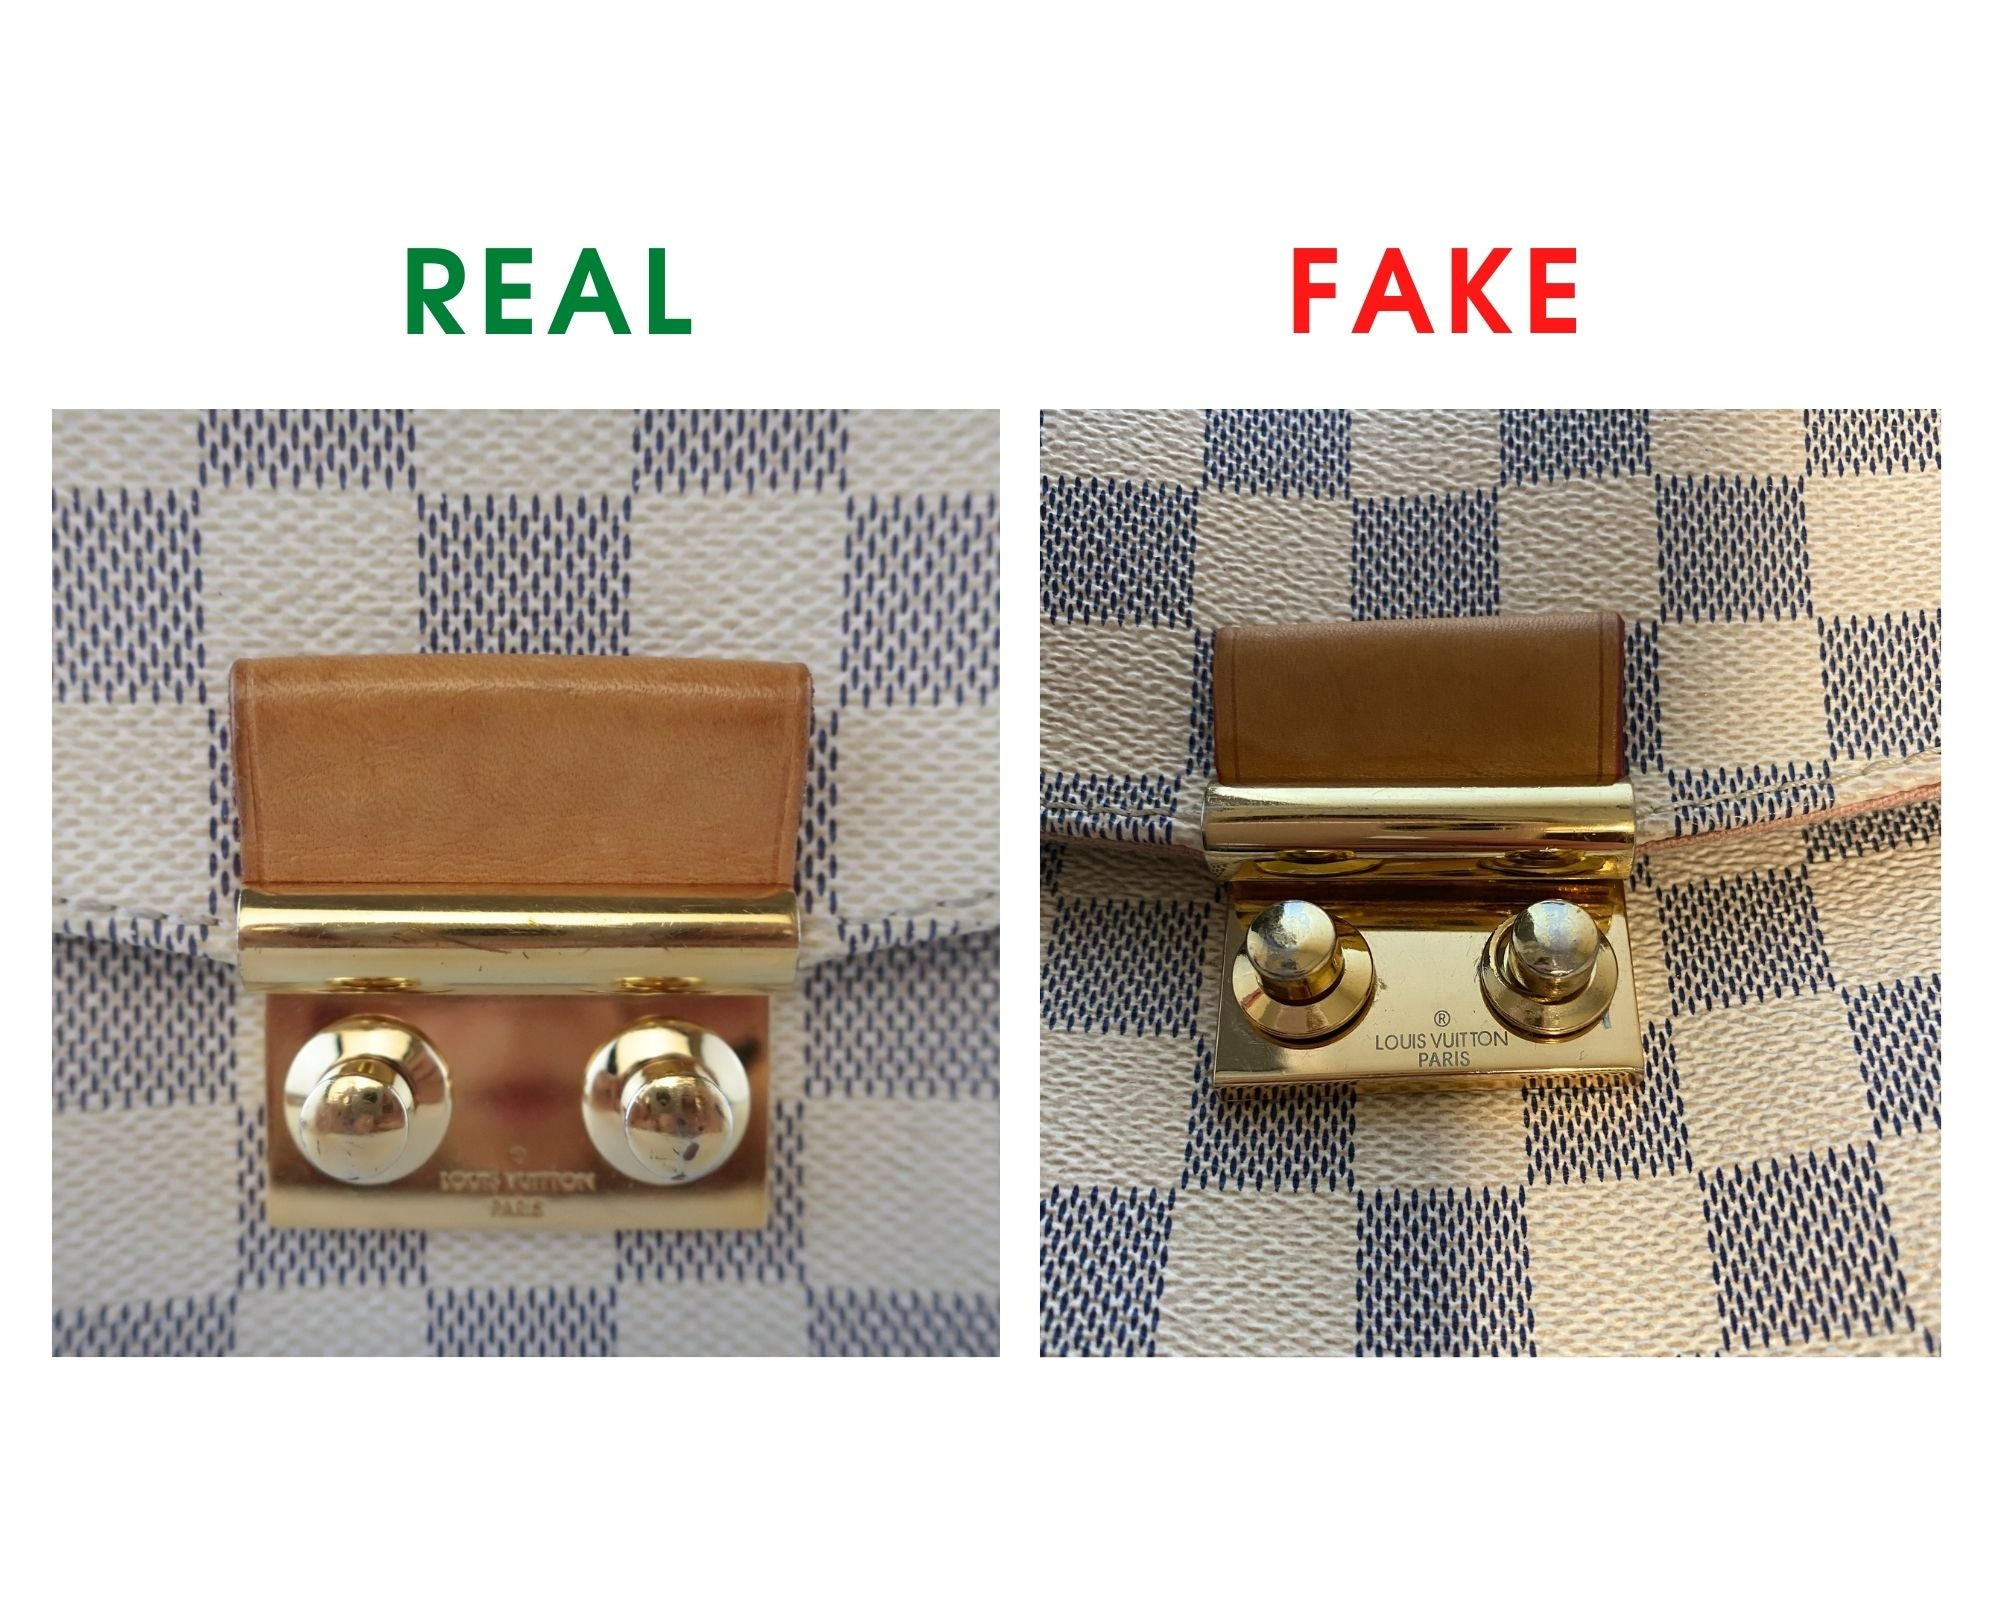 Louis Vuitton Croisette Bag Review and Real vs Fake Comparison (With Real Photos) lock